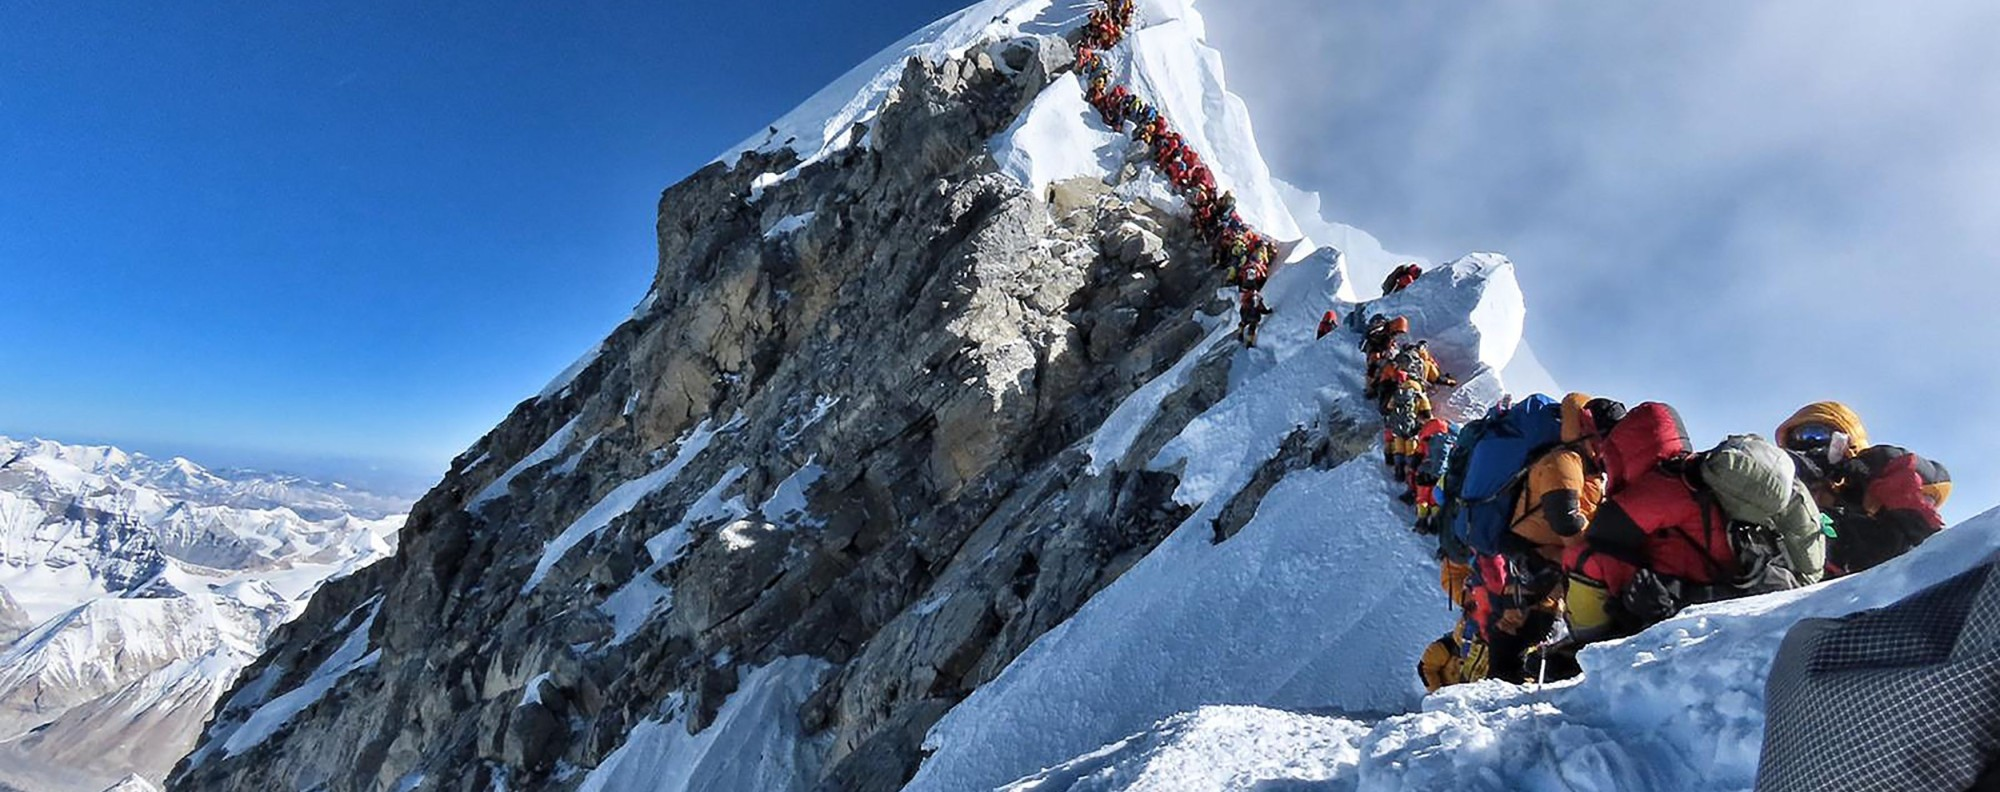 A photo of a traffic jam on Everest went viral and has sparked change in the way the Nepalese government plans to manage the mountain. Photo: AFP/@Nimsdai Project Possible